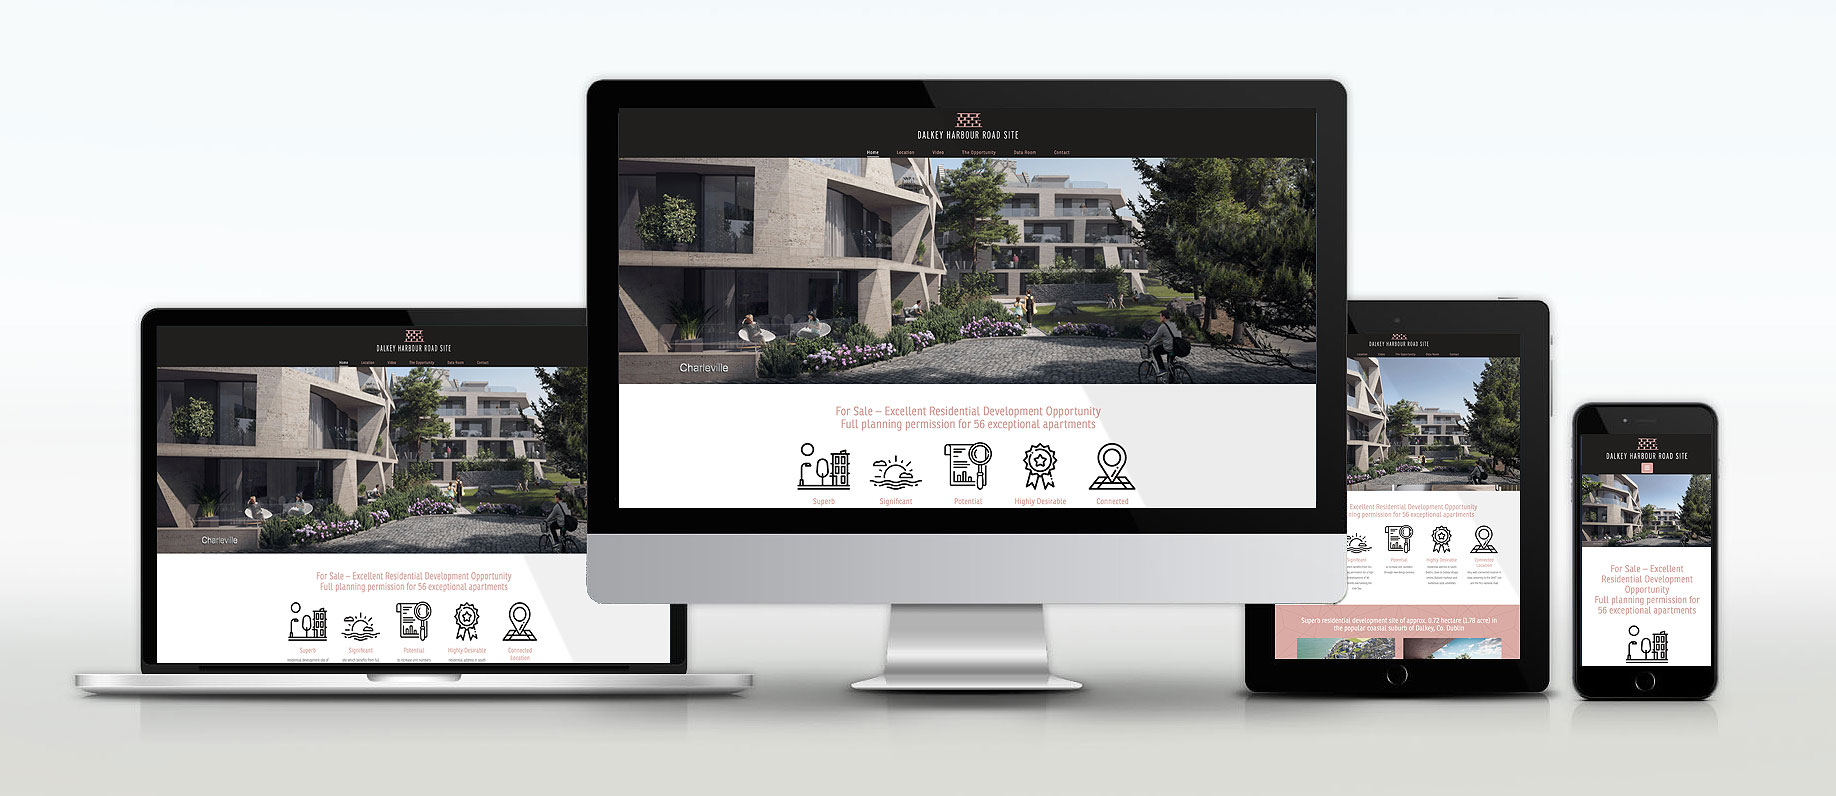 Commercial property Website by Avalanche Design